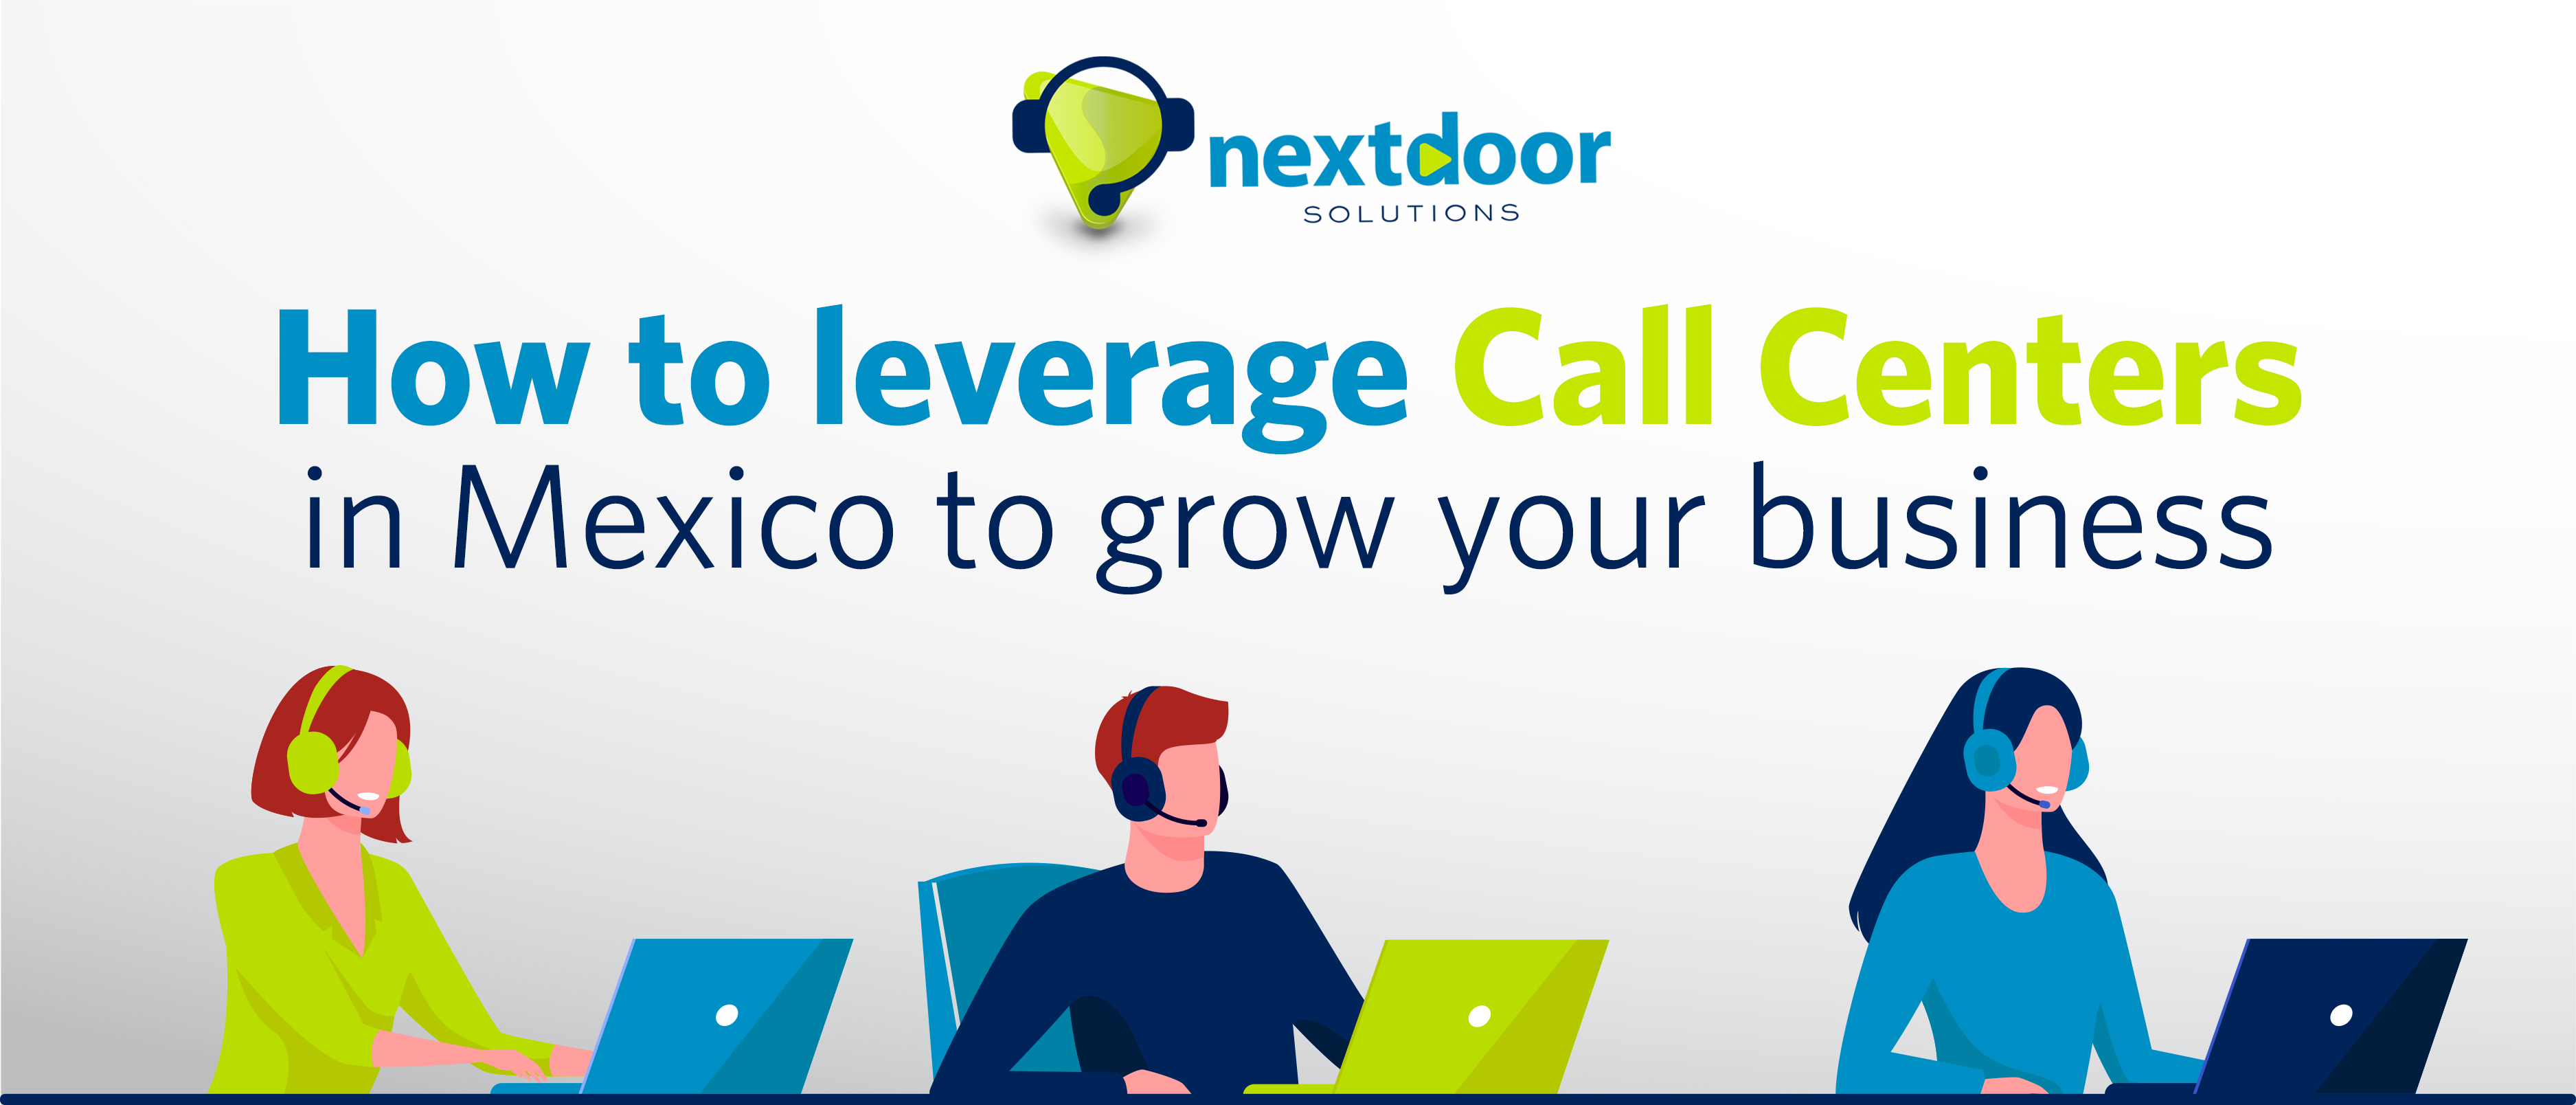 How to leverage Call Centers in Mexico to grow your business